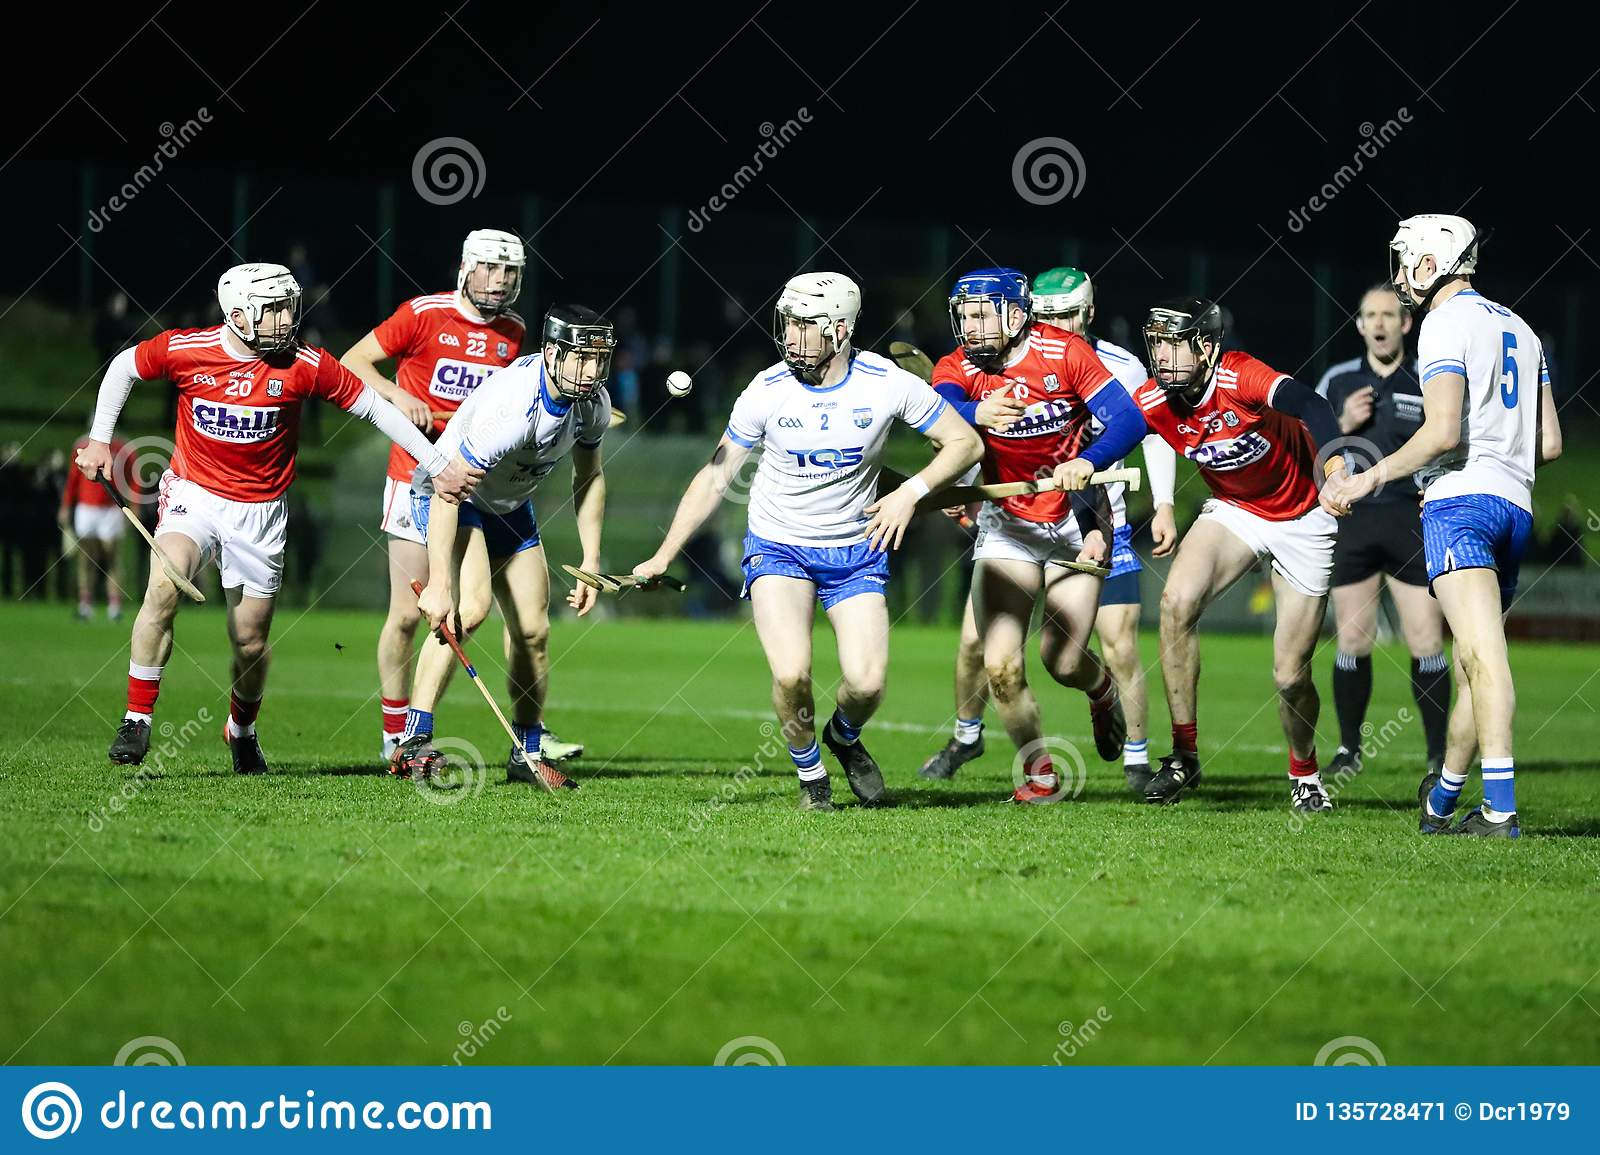 Co-Op Superstores Munster Hurling League 2019 match between Cork and Waterford at Mallow GAA Sports Complex